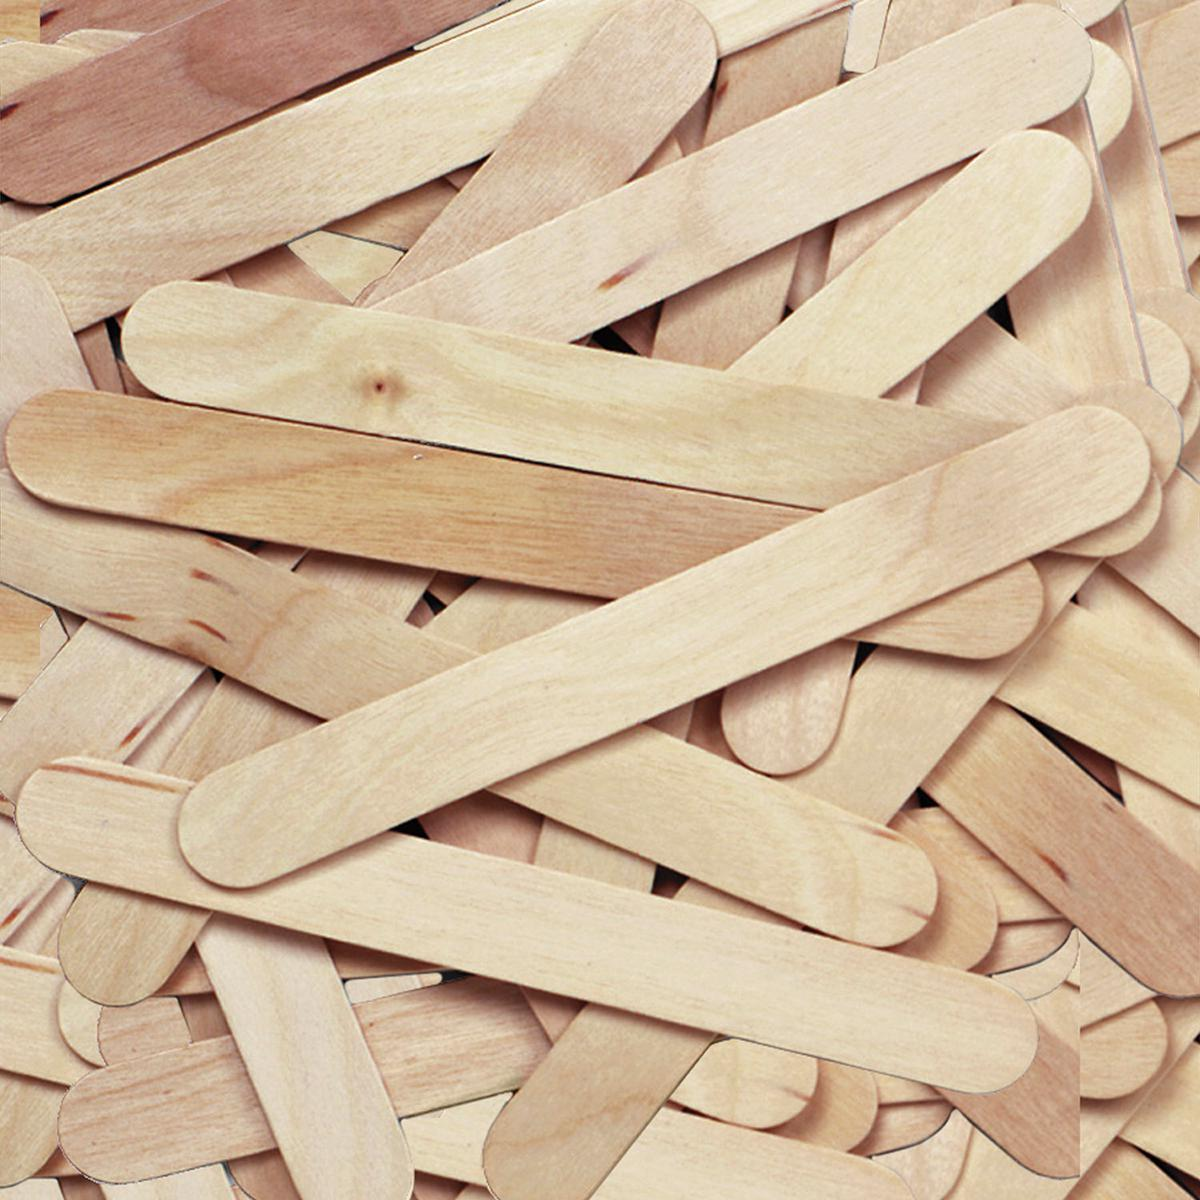 Wooden Jumbo Craft Sticks